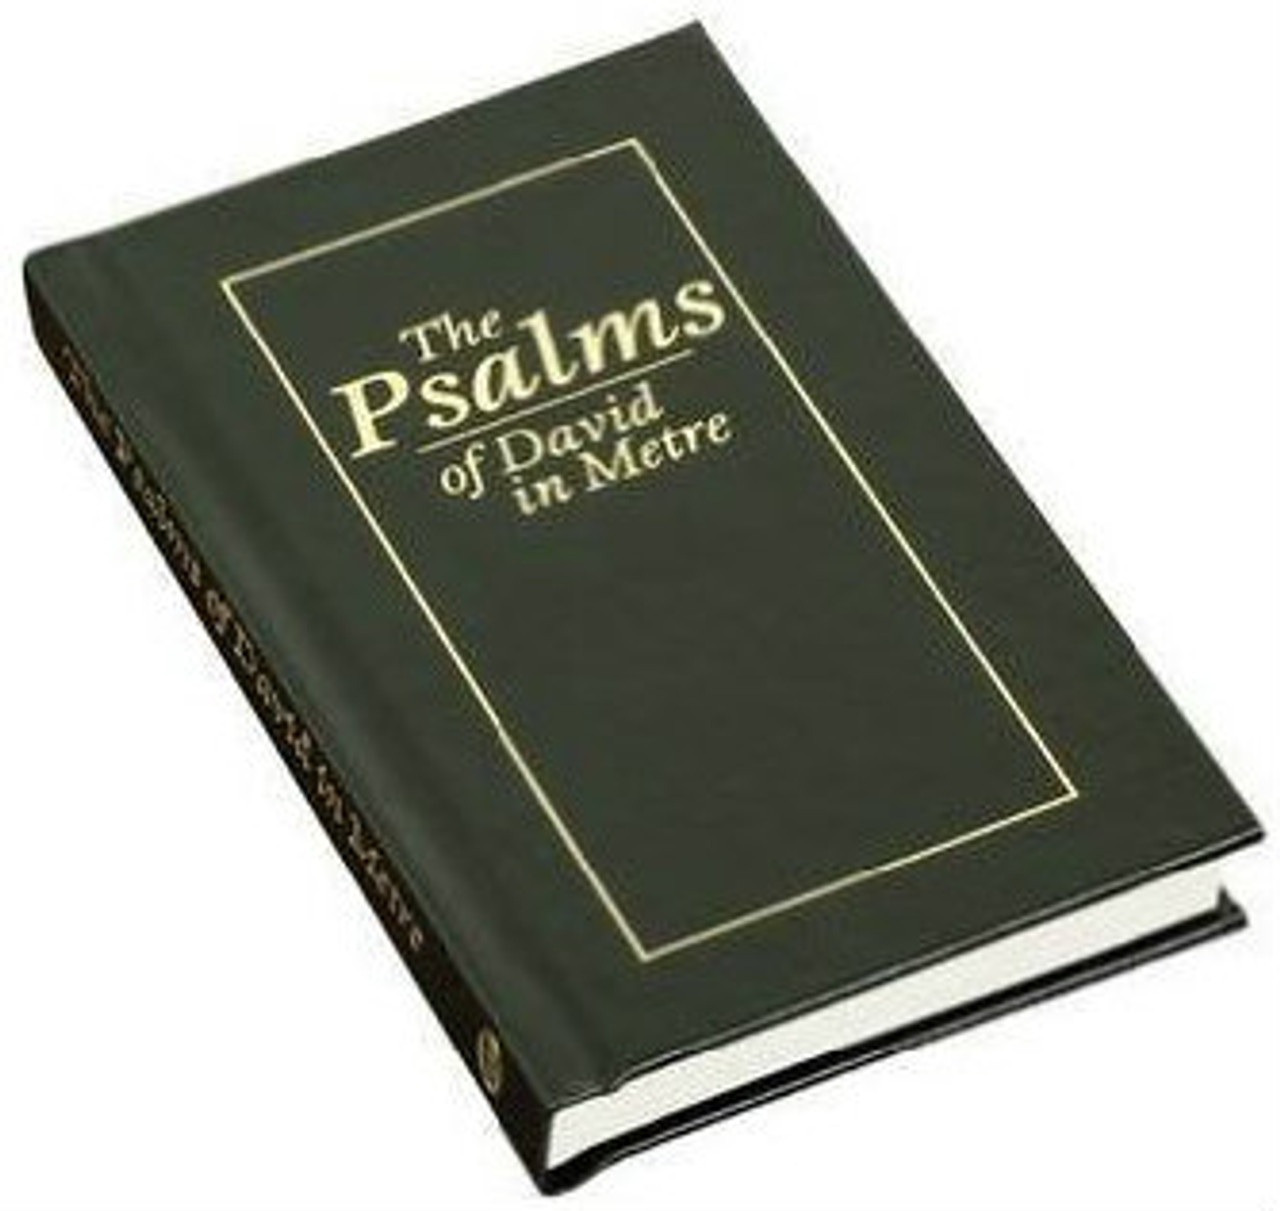 The Psalms of David in Metre - Pocket Edition